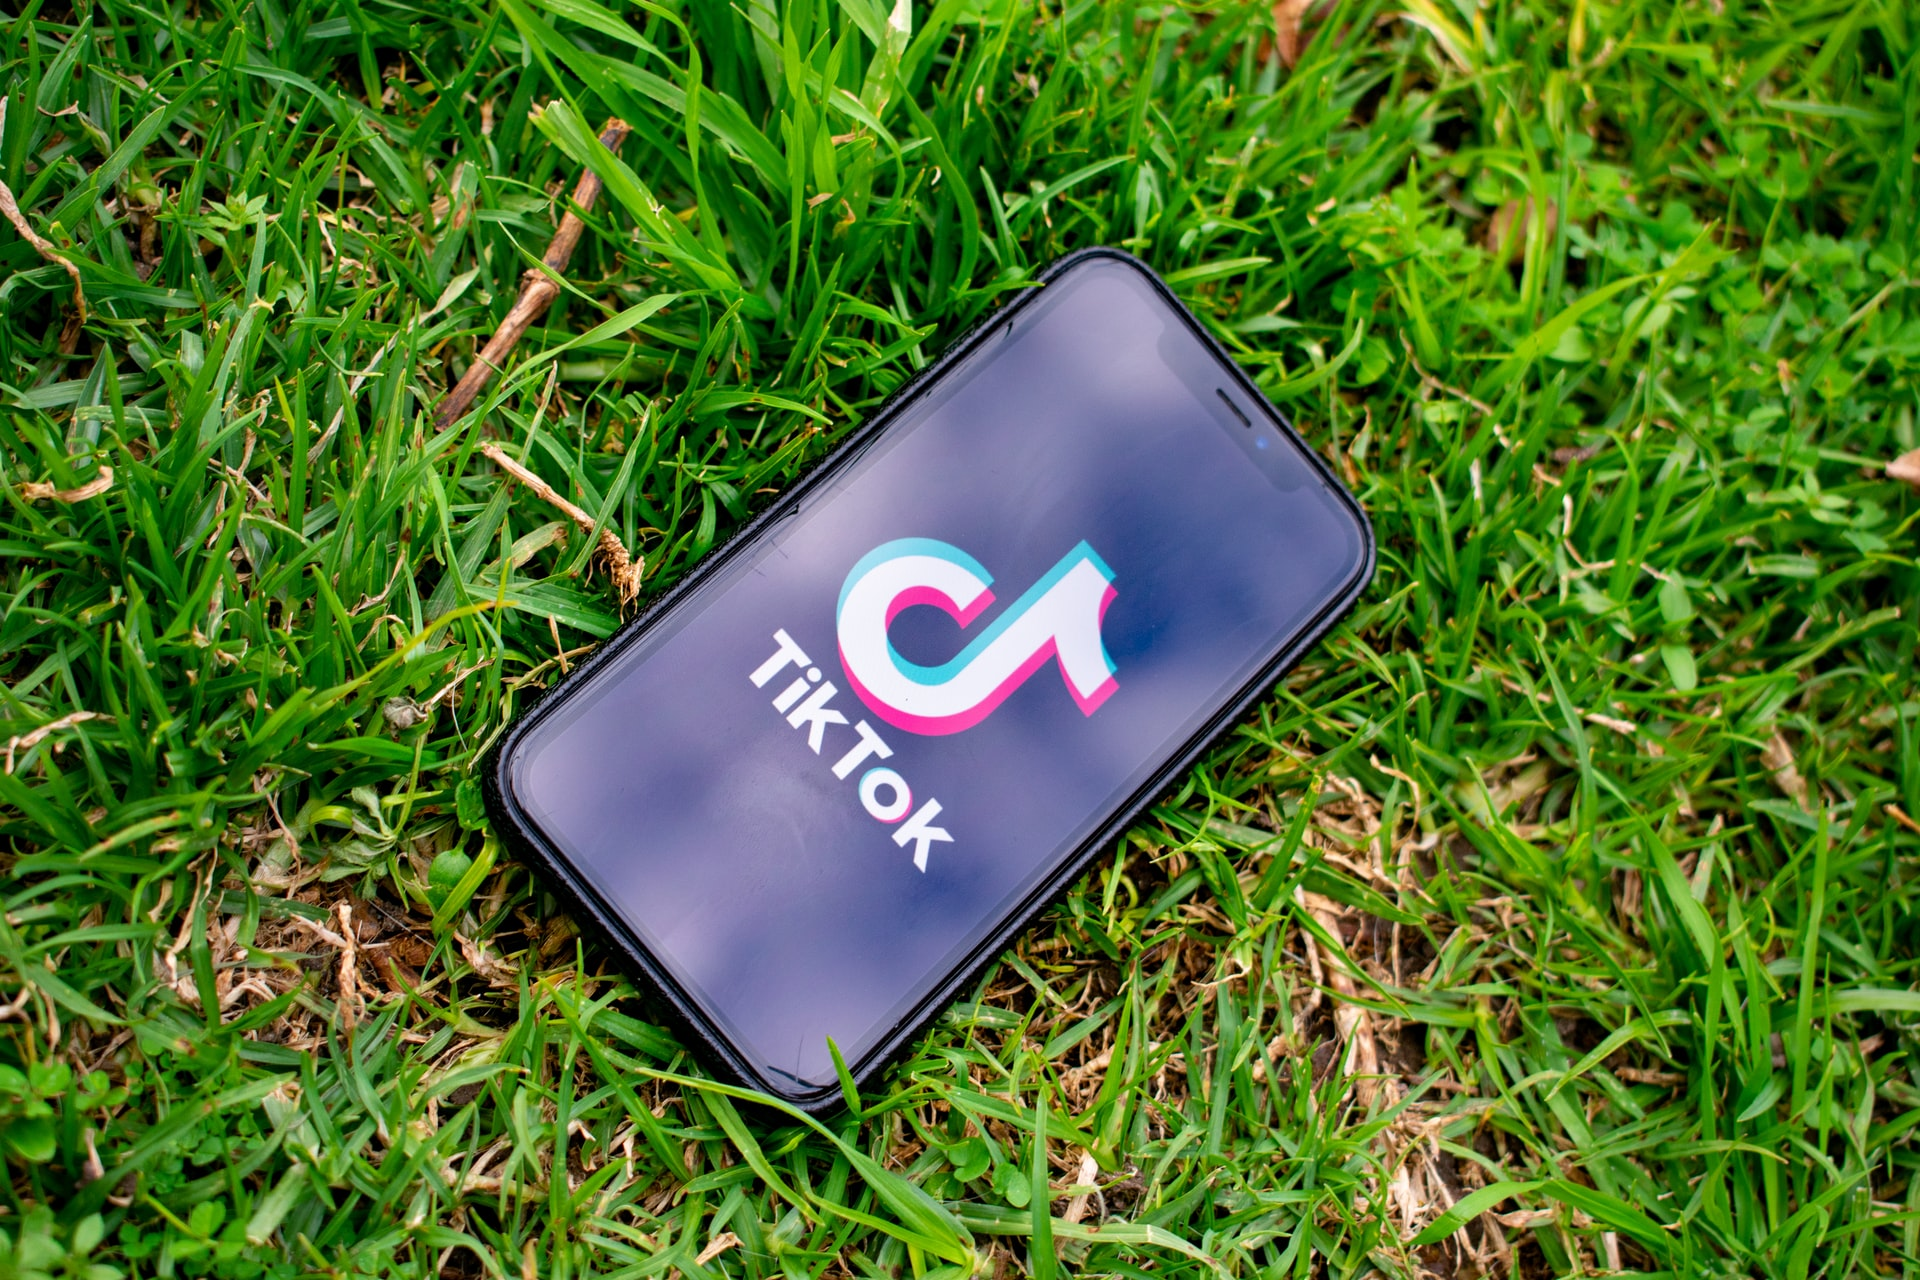 Photo of an iPhone laying in grass displaying the TikTok app